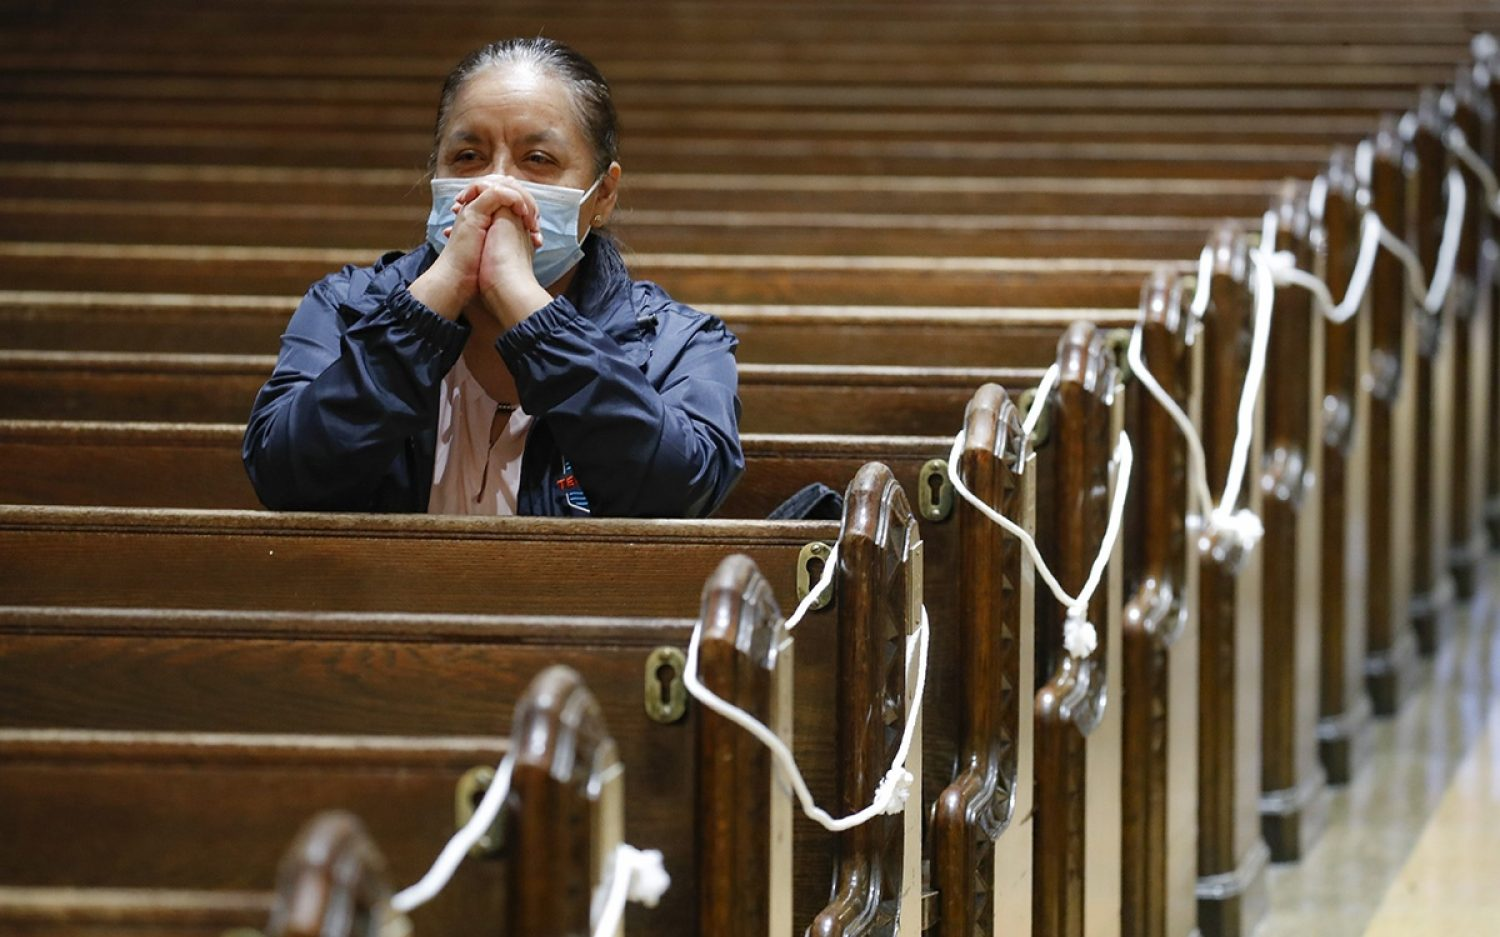 Holiday cheer for New York worshippers